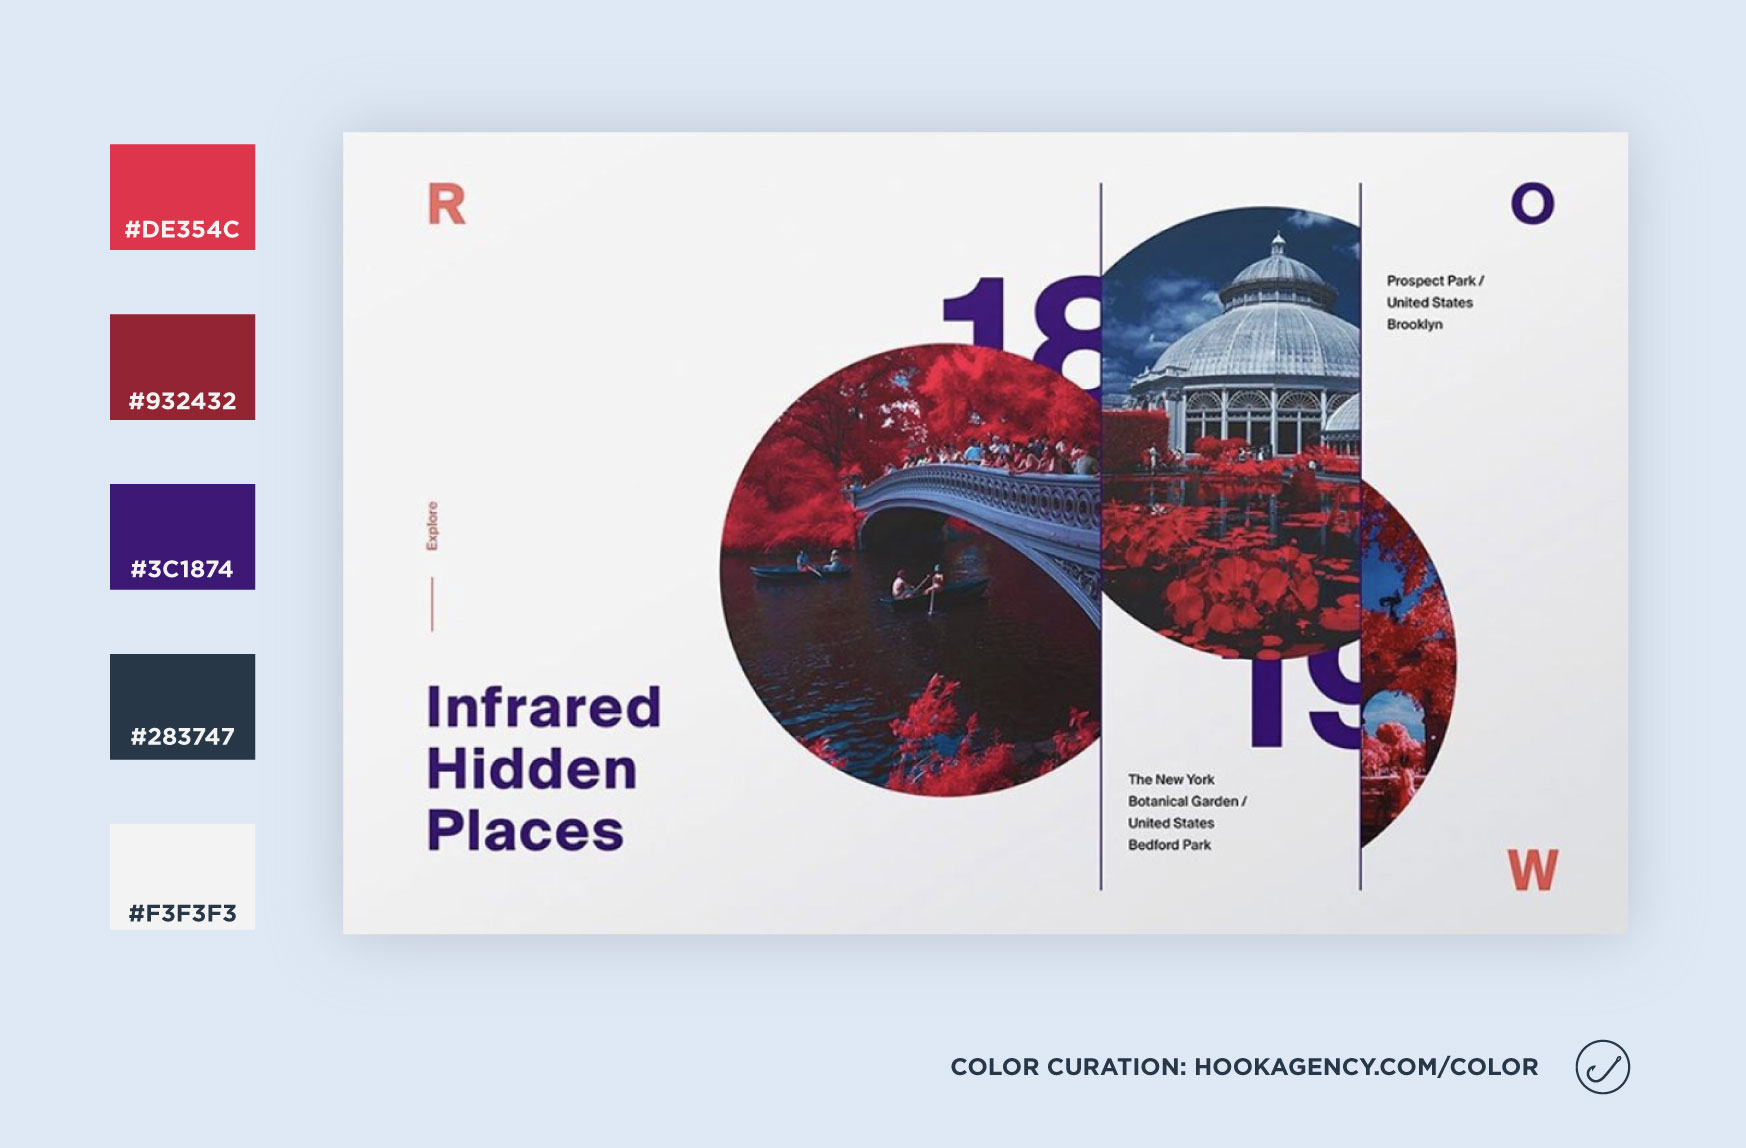 Red and Purple Color Scheme 2021 - Website color schemes inspiration, Dribbble, Pinterest, Behance